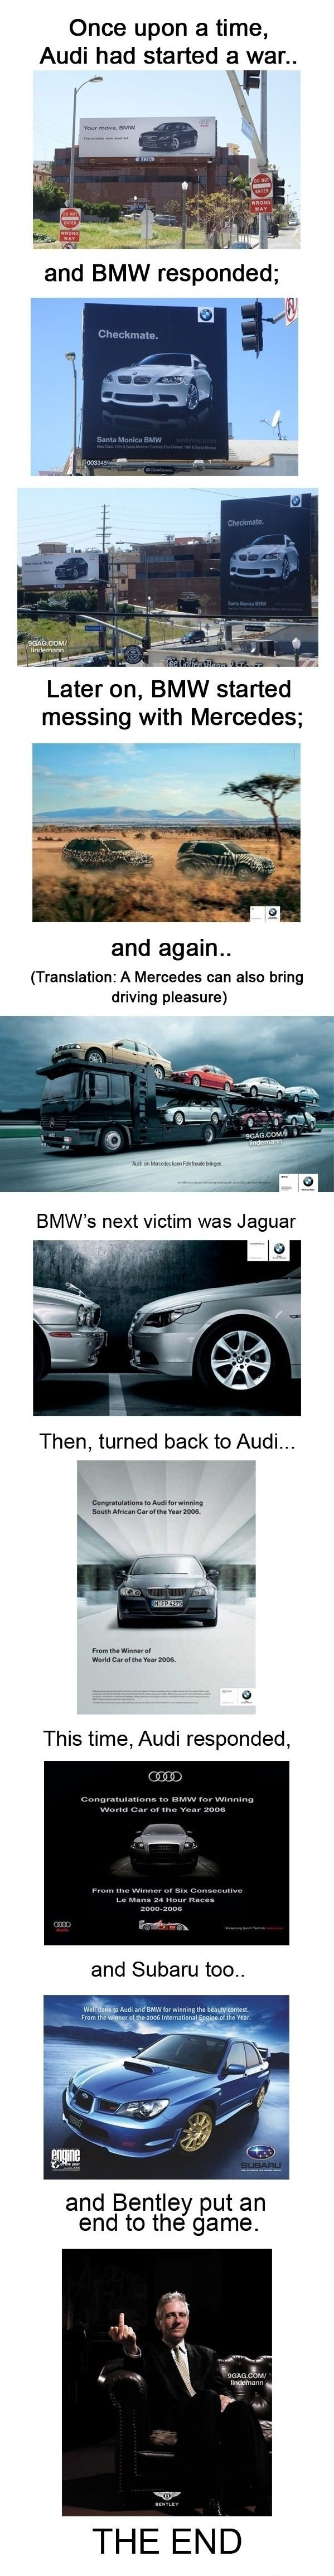 The Story Begins. Found it, may be a repost. If so, Sorry.. Once upon a time, Audi had started a war.. Later , BMW started messing with Mercedes; and again.. Tr